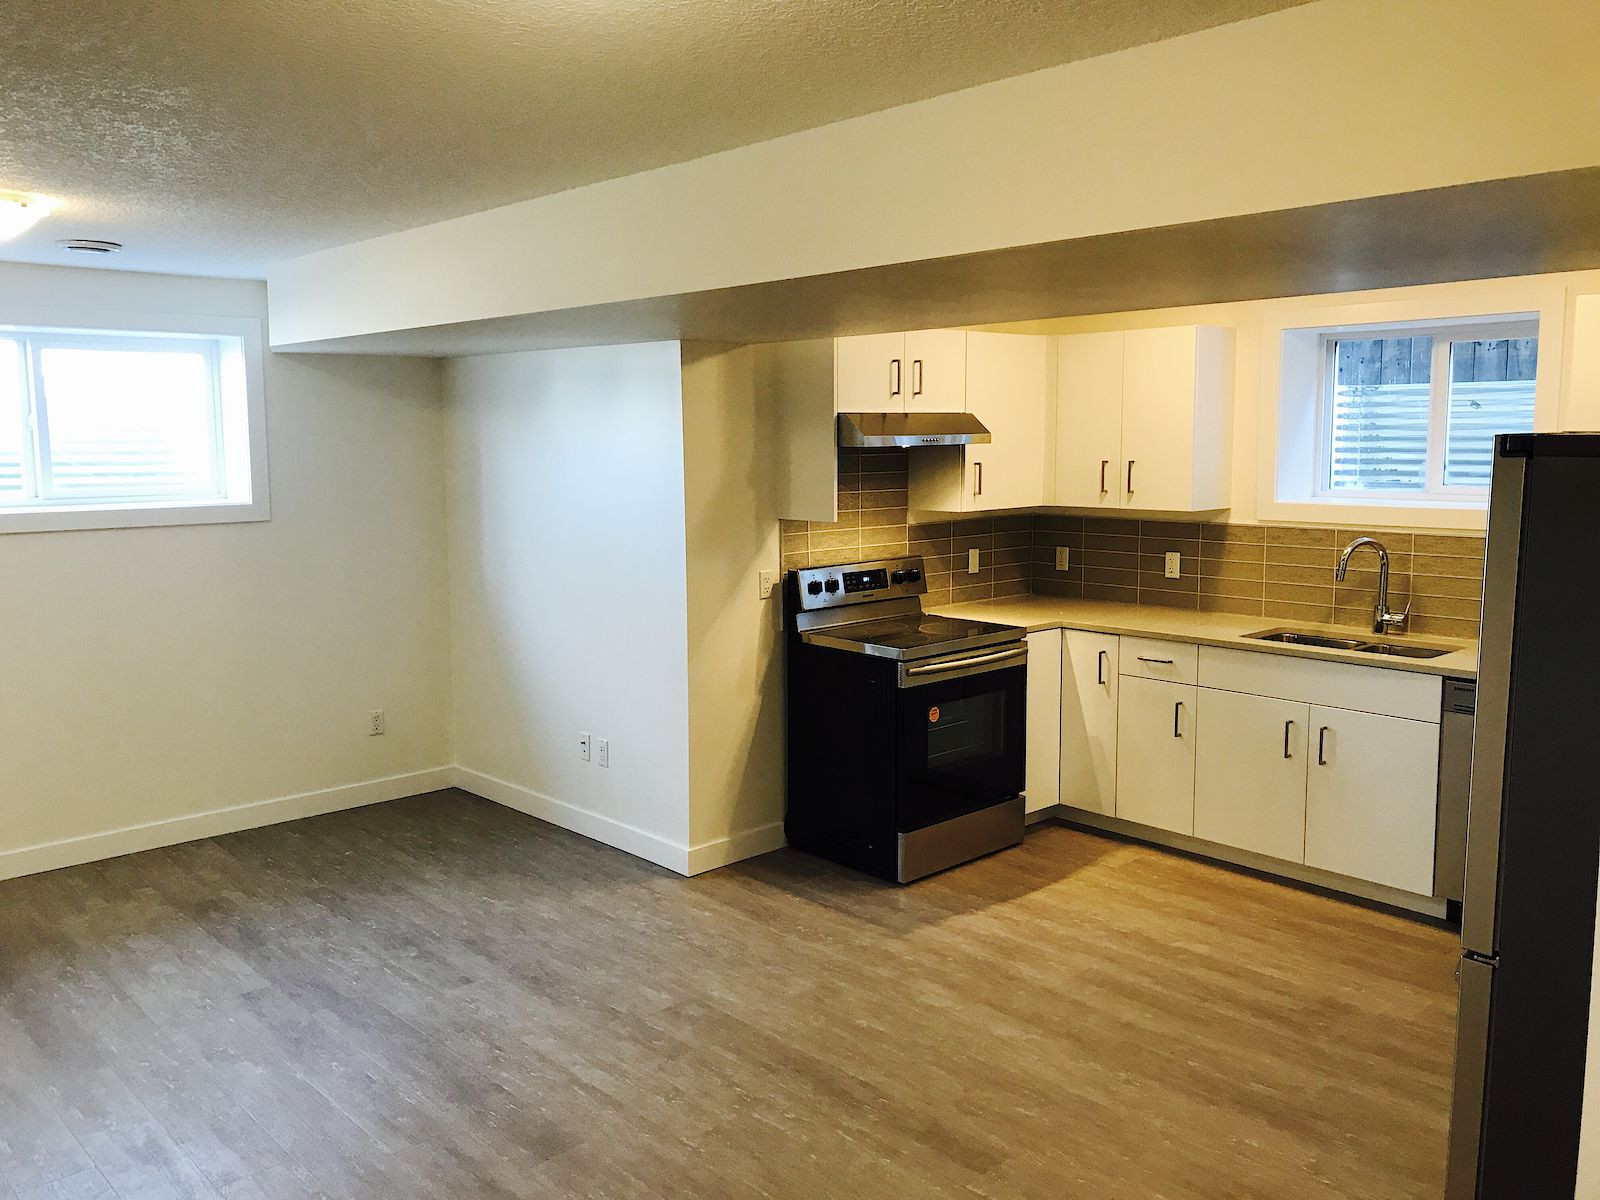 Edmonton Basement For Rent | Ritchie, NW | BEAUTIFUL 2 BEDROOM BASEMENT  SUITE | ID 312728   RentFaster.ca | RentFaster.ca